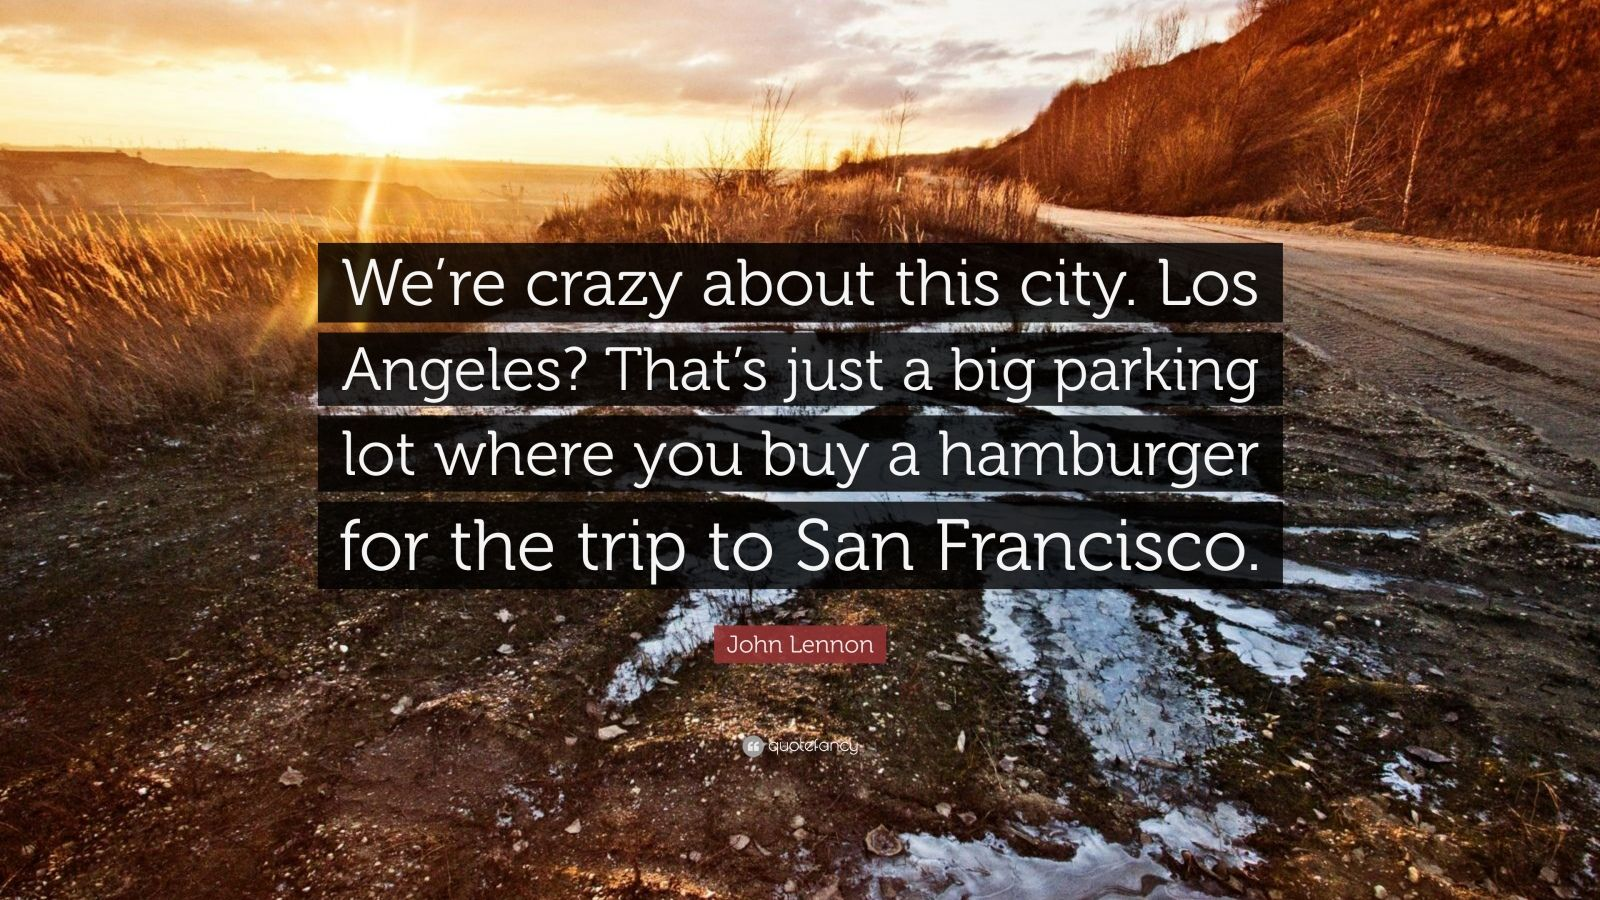 """John Lennon Quote: """"We're crazy about this city. Los Angeles? That's just a big parking lot where you buy a hamburger for the trip to San Francisco."""""""